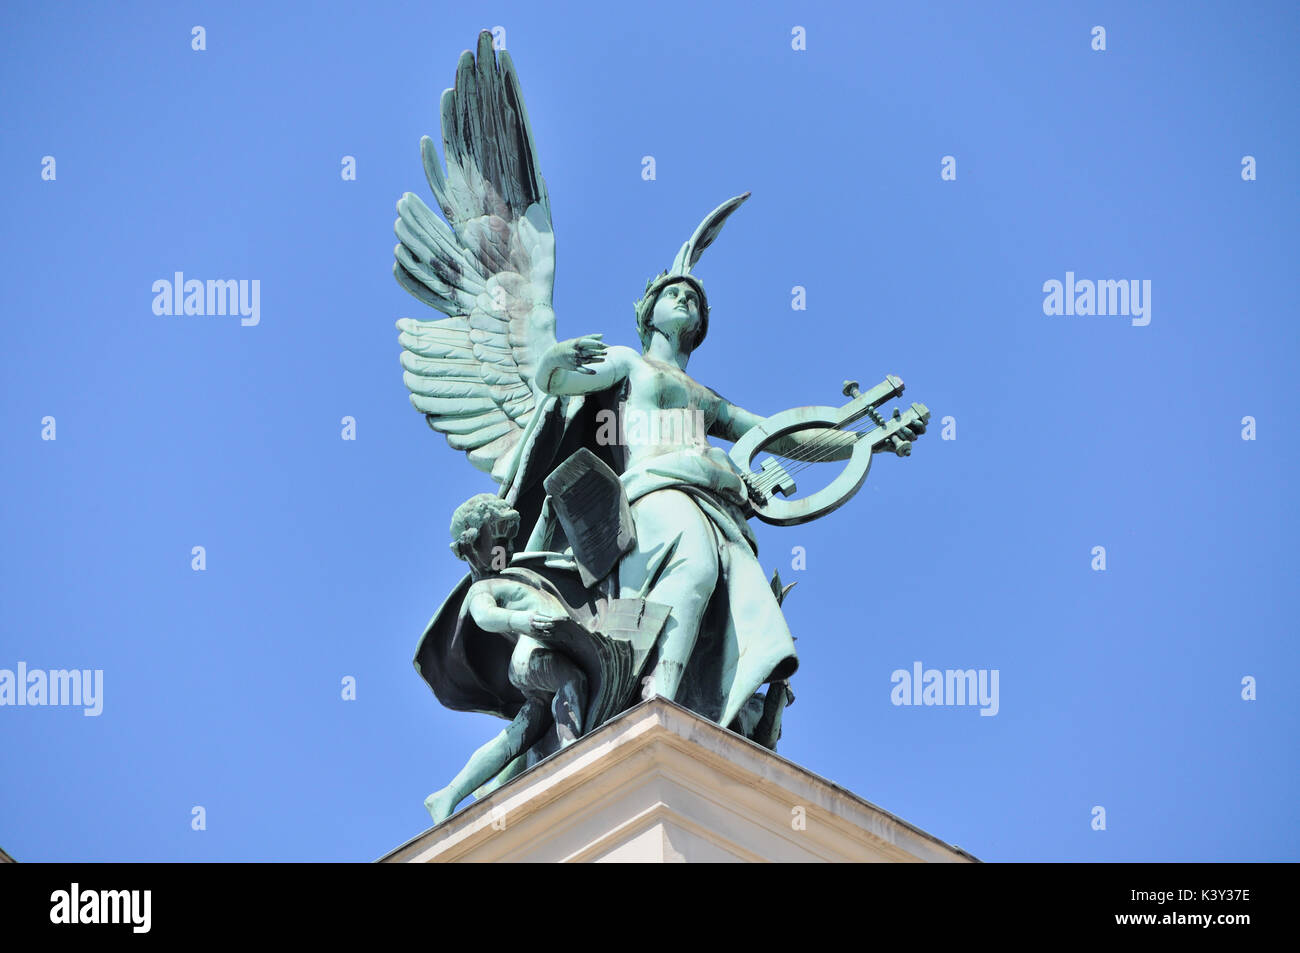 Muse with a harp on the roof of theater, Lvov, Ukraine - Stock Image